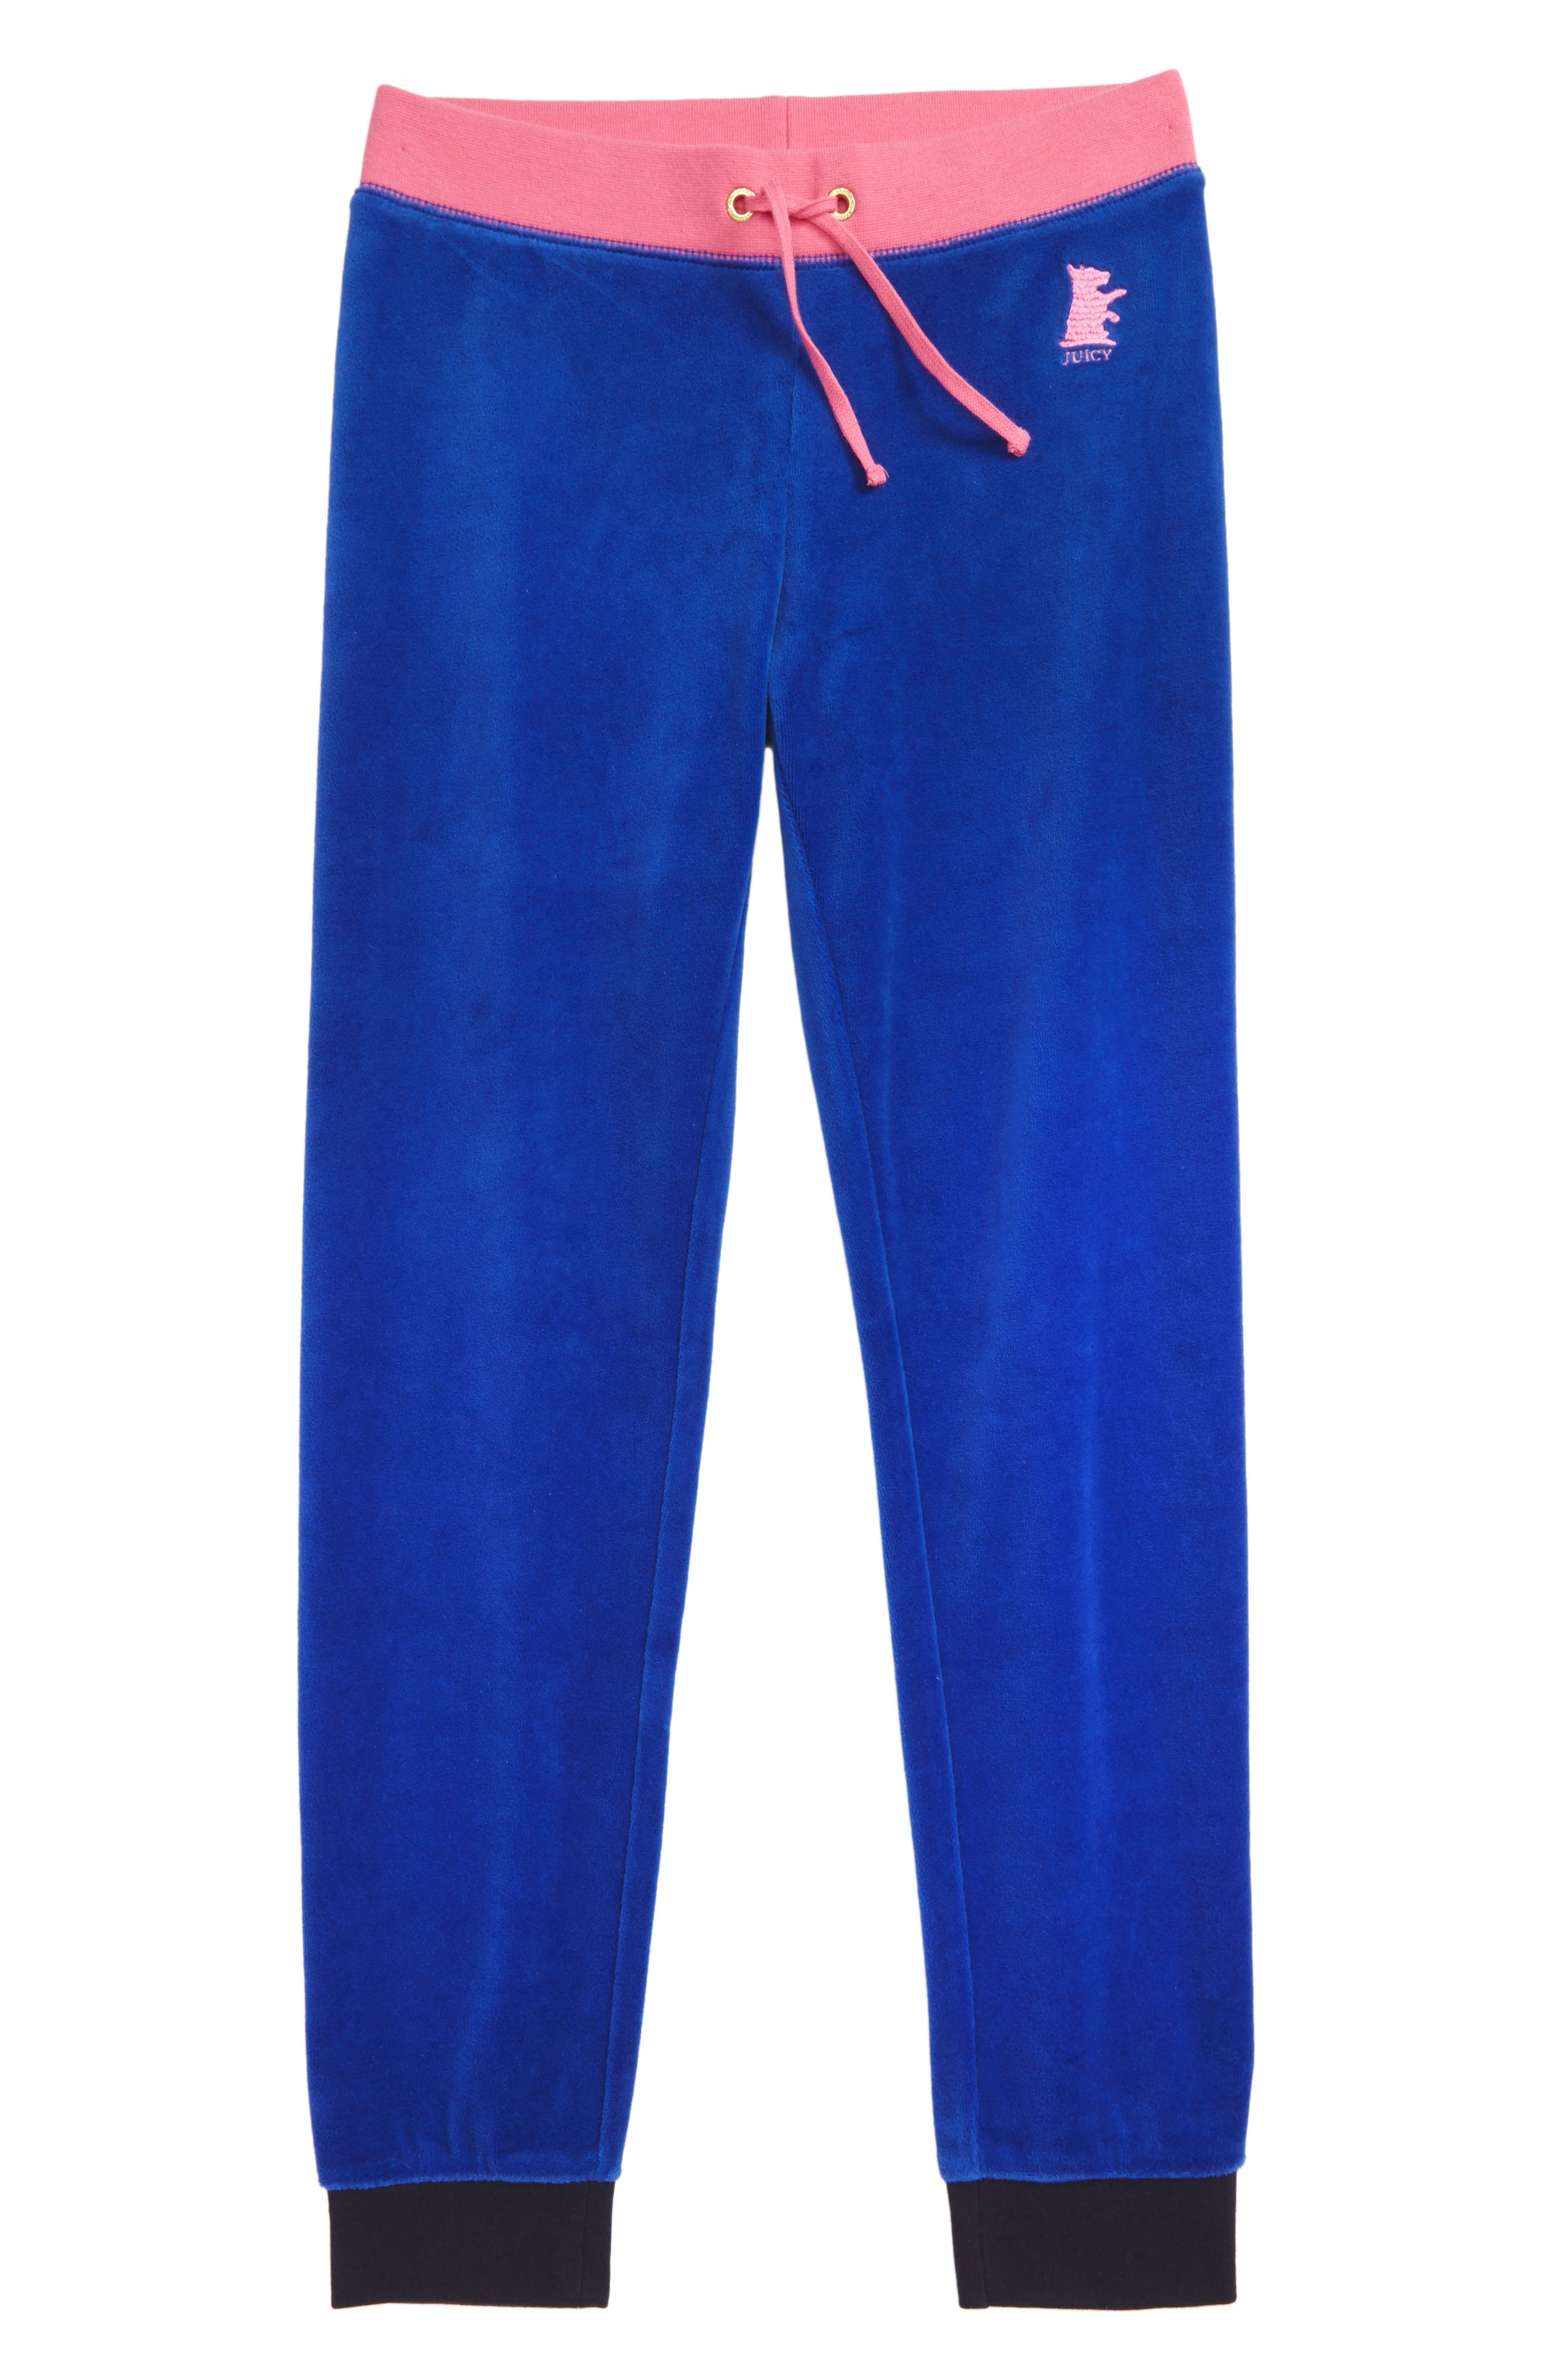 Main Image - Juicy Couture Zuma Velour Pants (Toddler Girls & Little Girls)